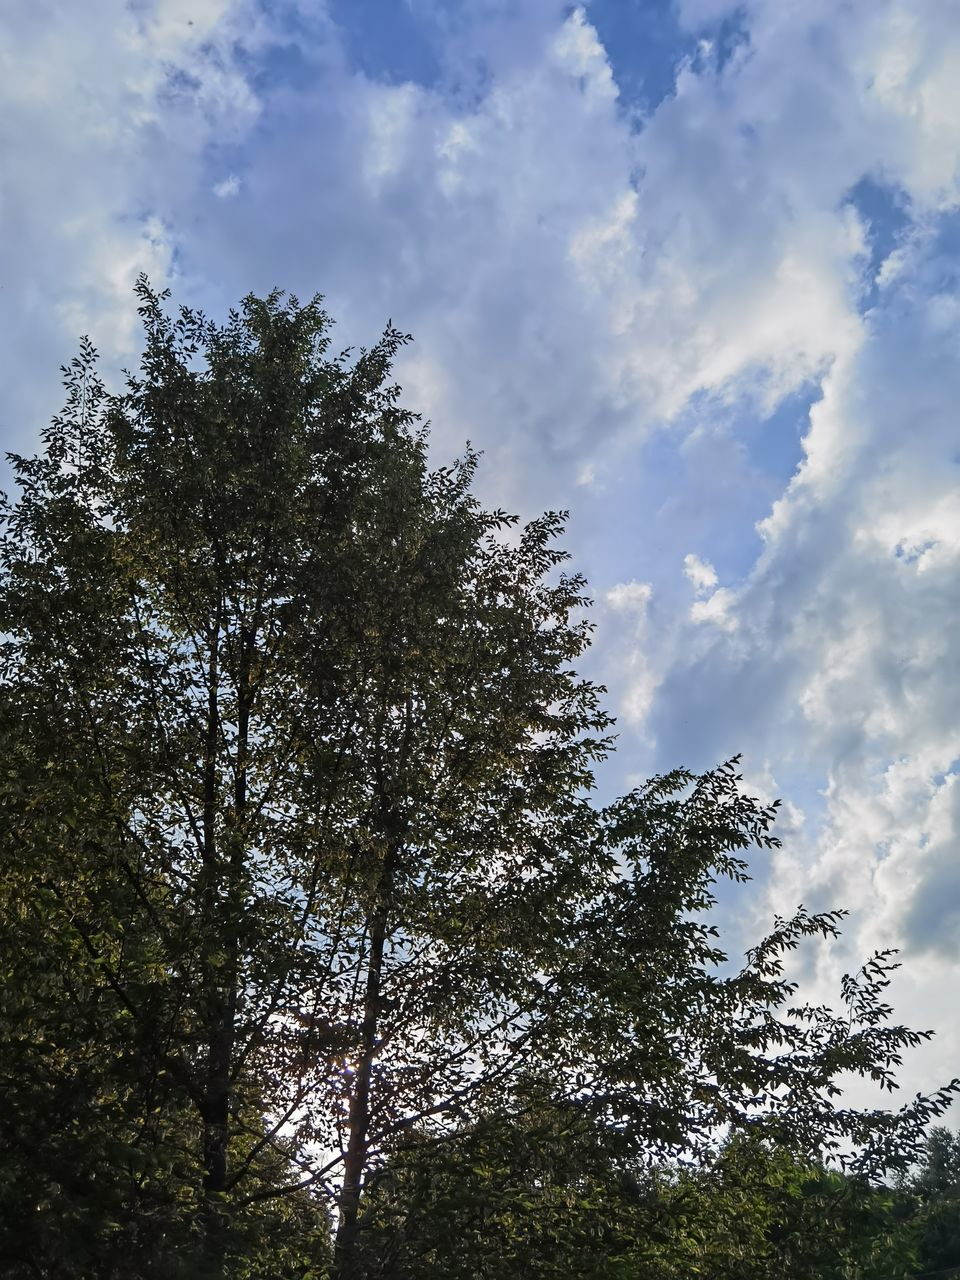 LOW ANGLE VIEW OF TREE AGAINST SKY IN FOREST